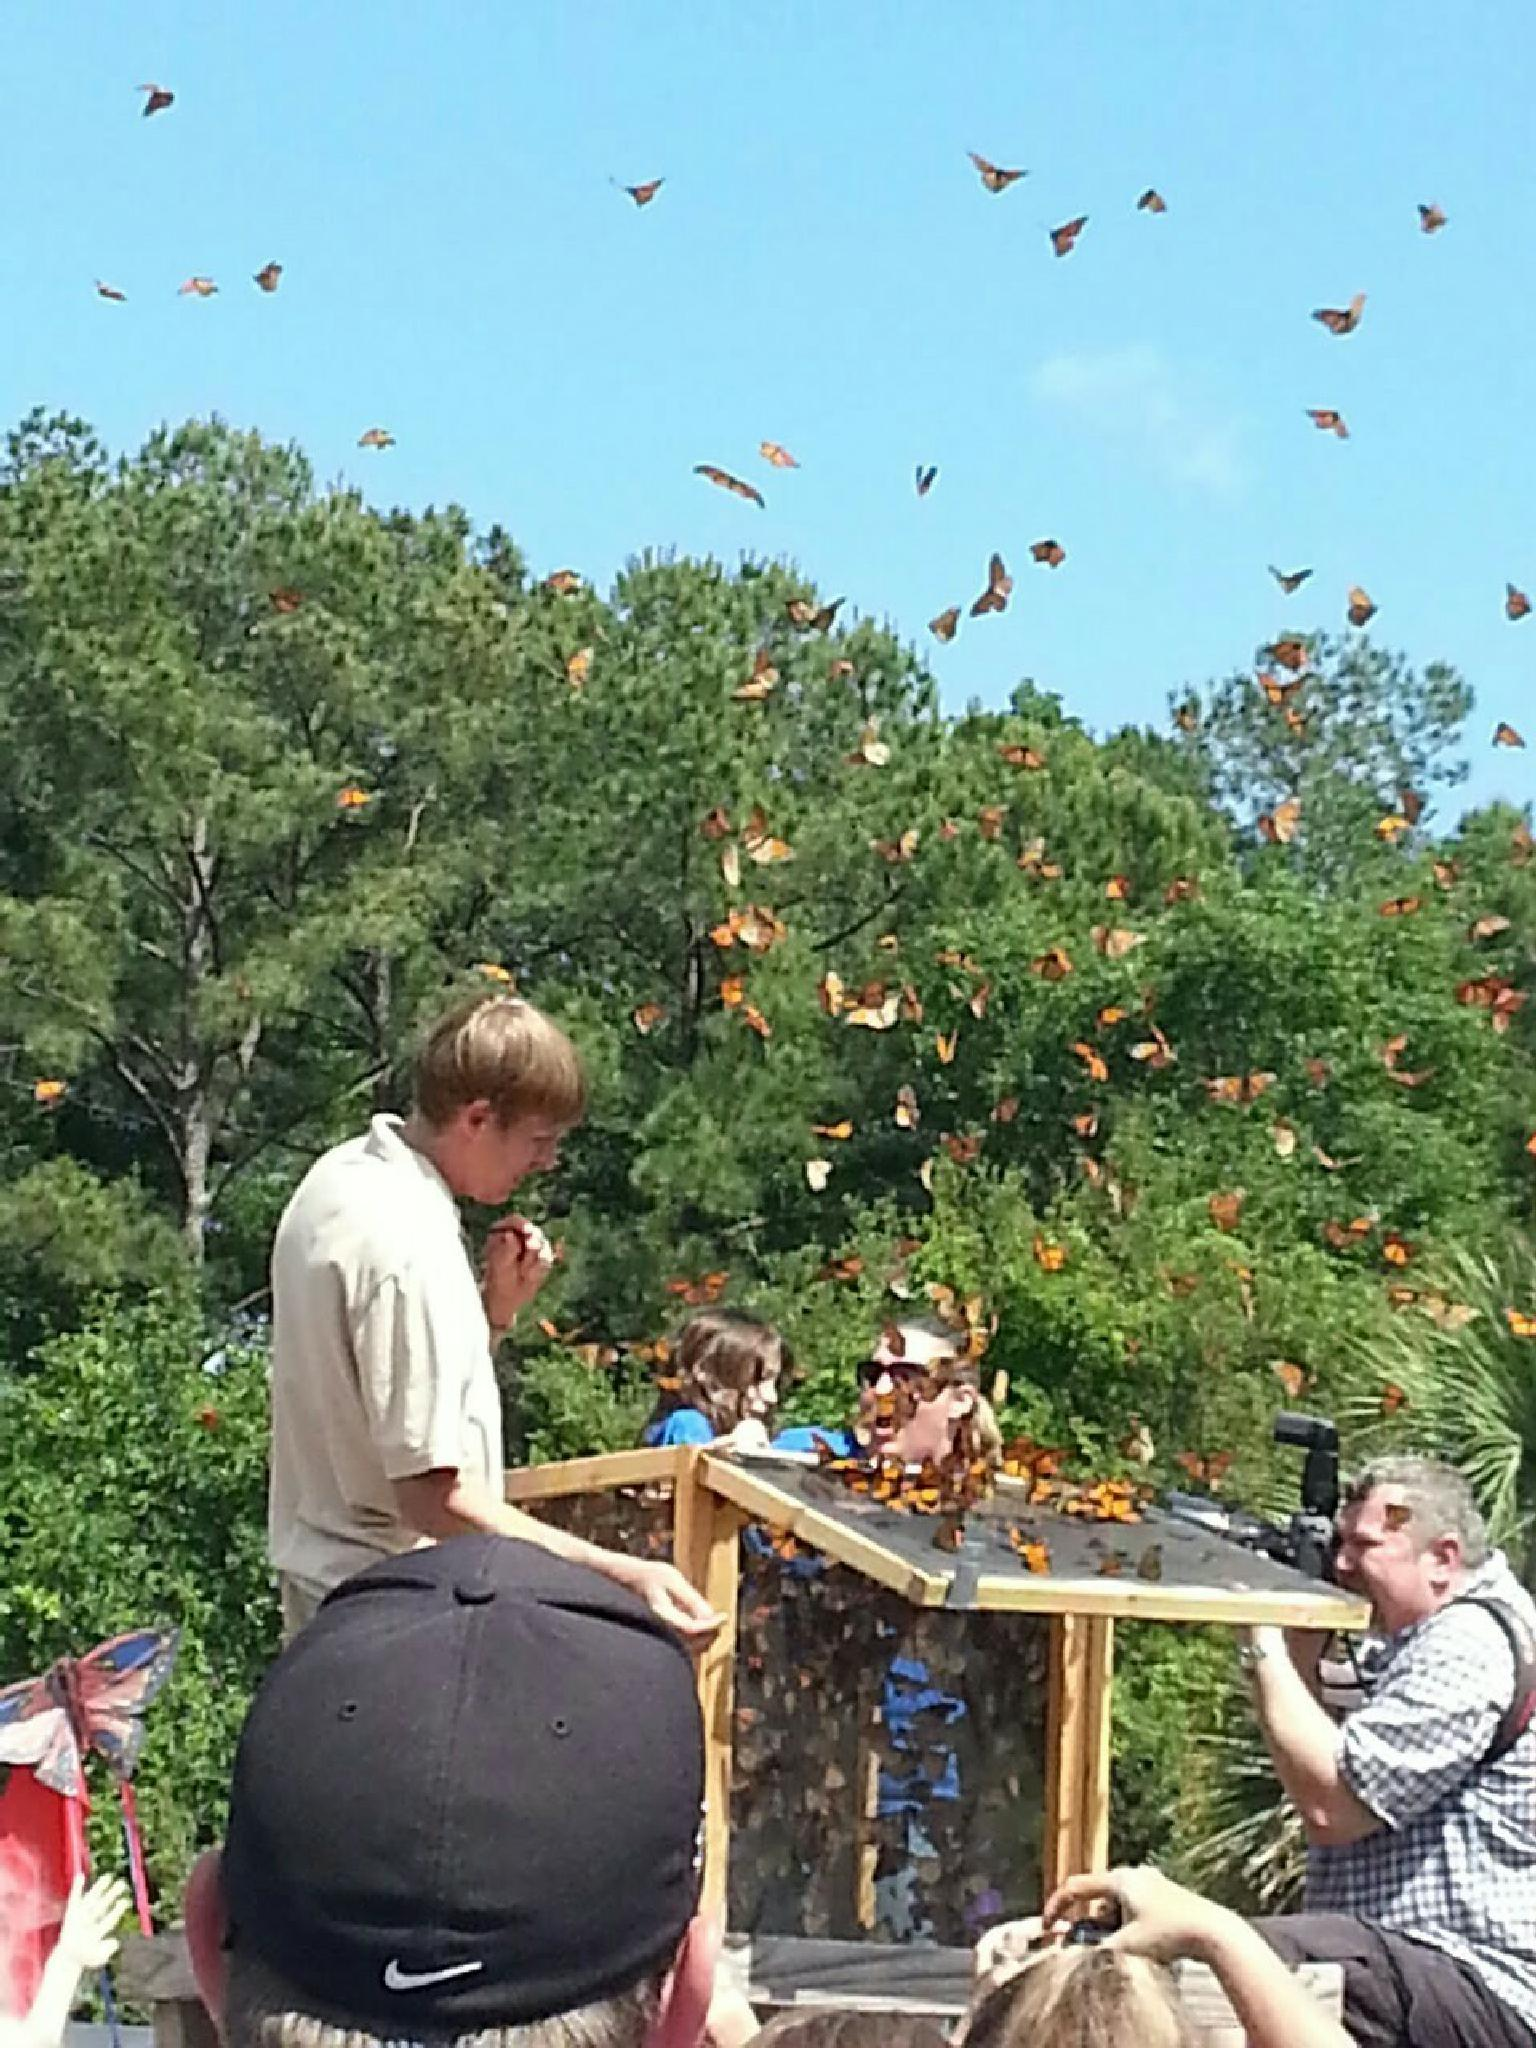 Release of the Monarch Butterflies  by aida.carpena